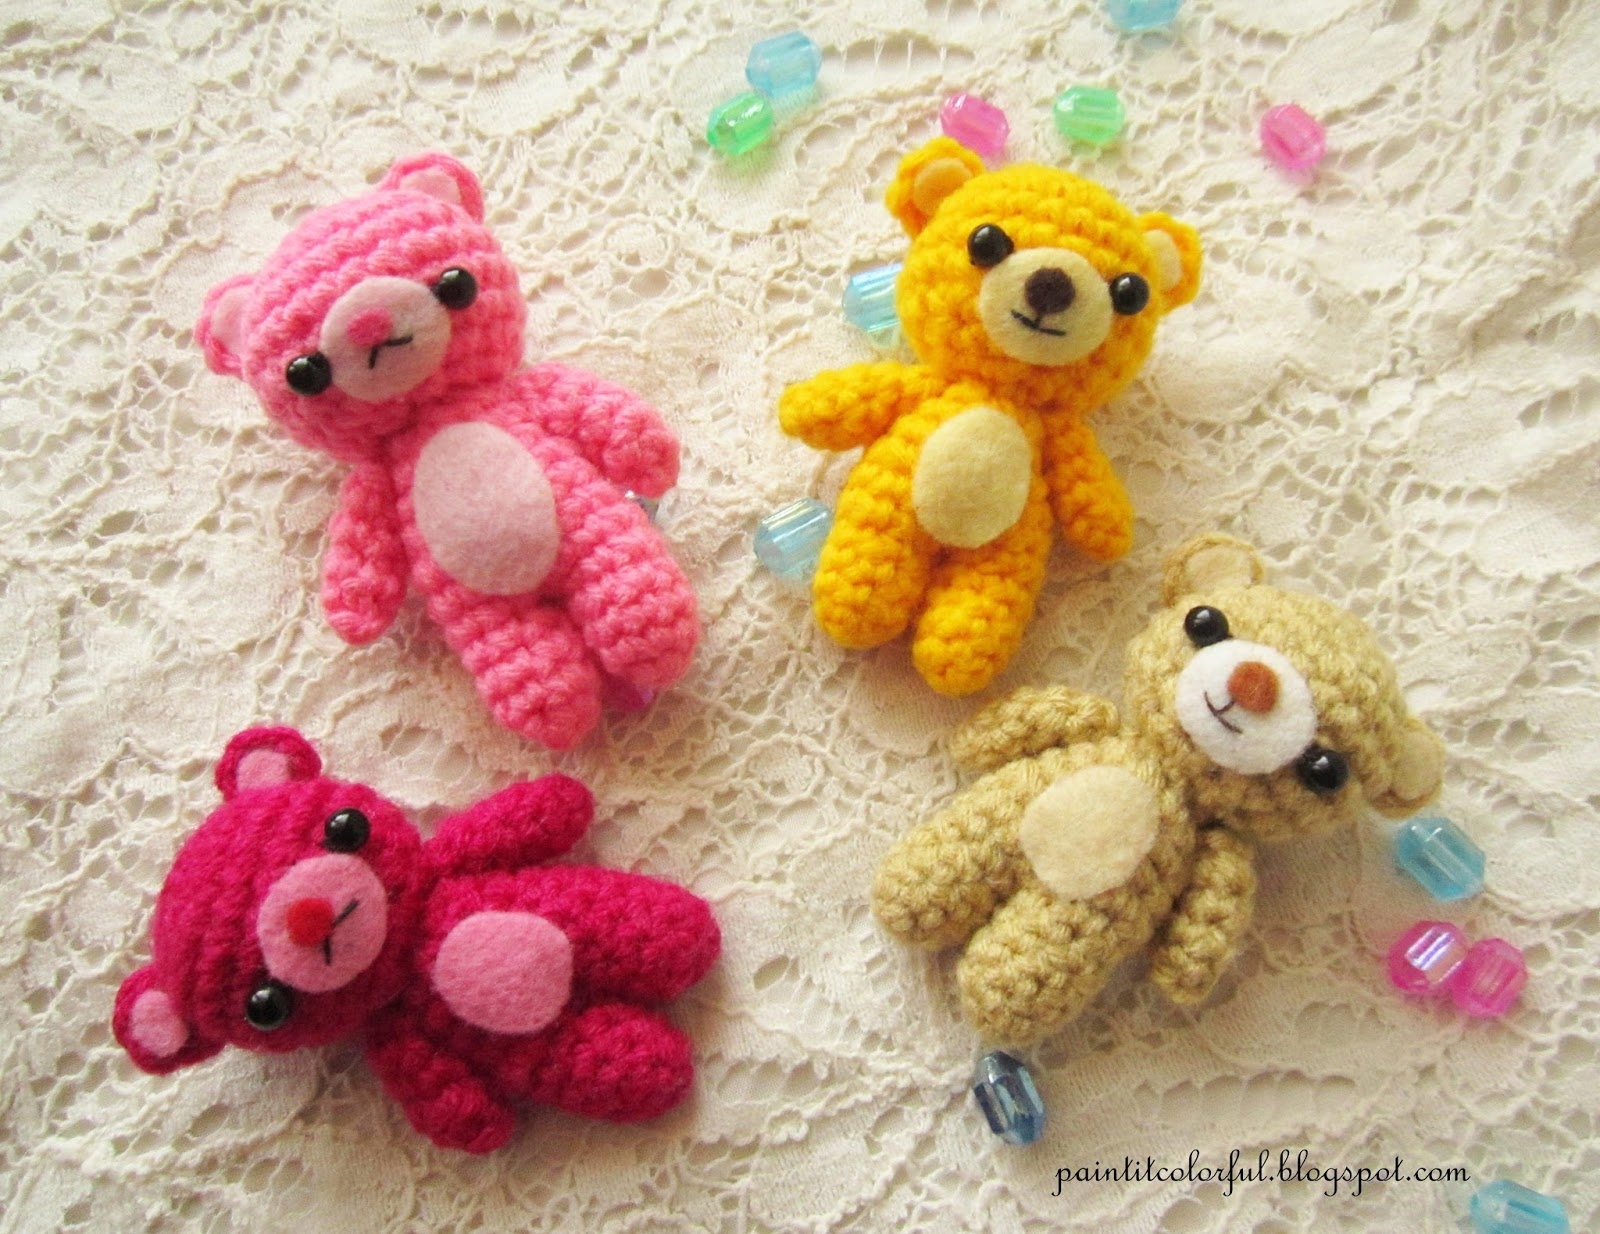 Amigurumi To Go Teddy Bear : A little love everyday!: Amigurumi Teddy bear pattern